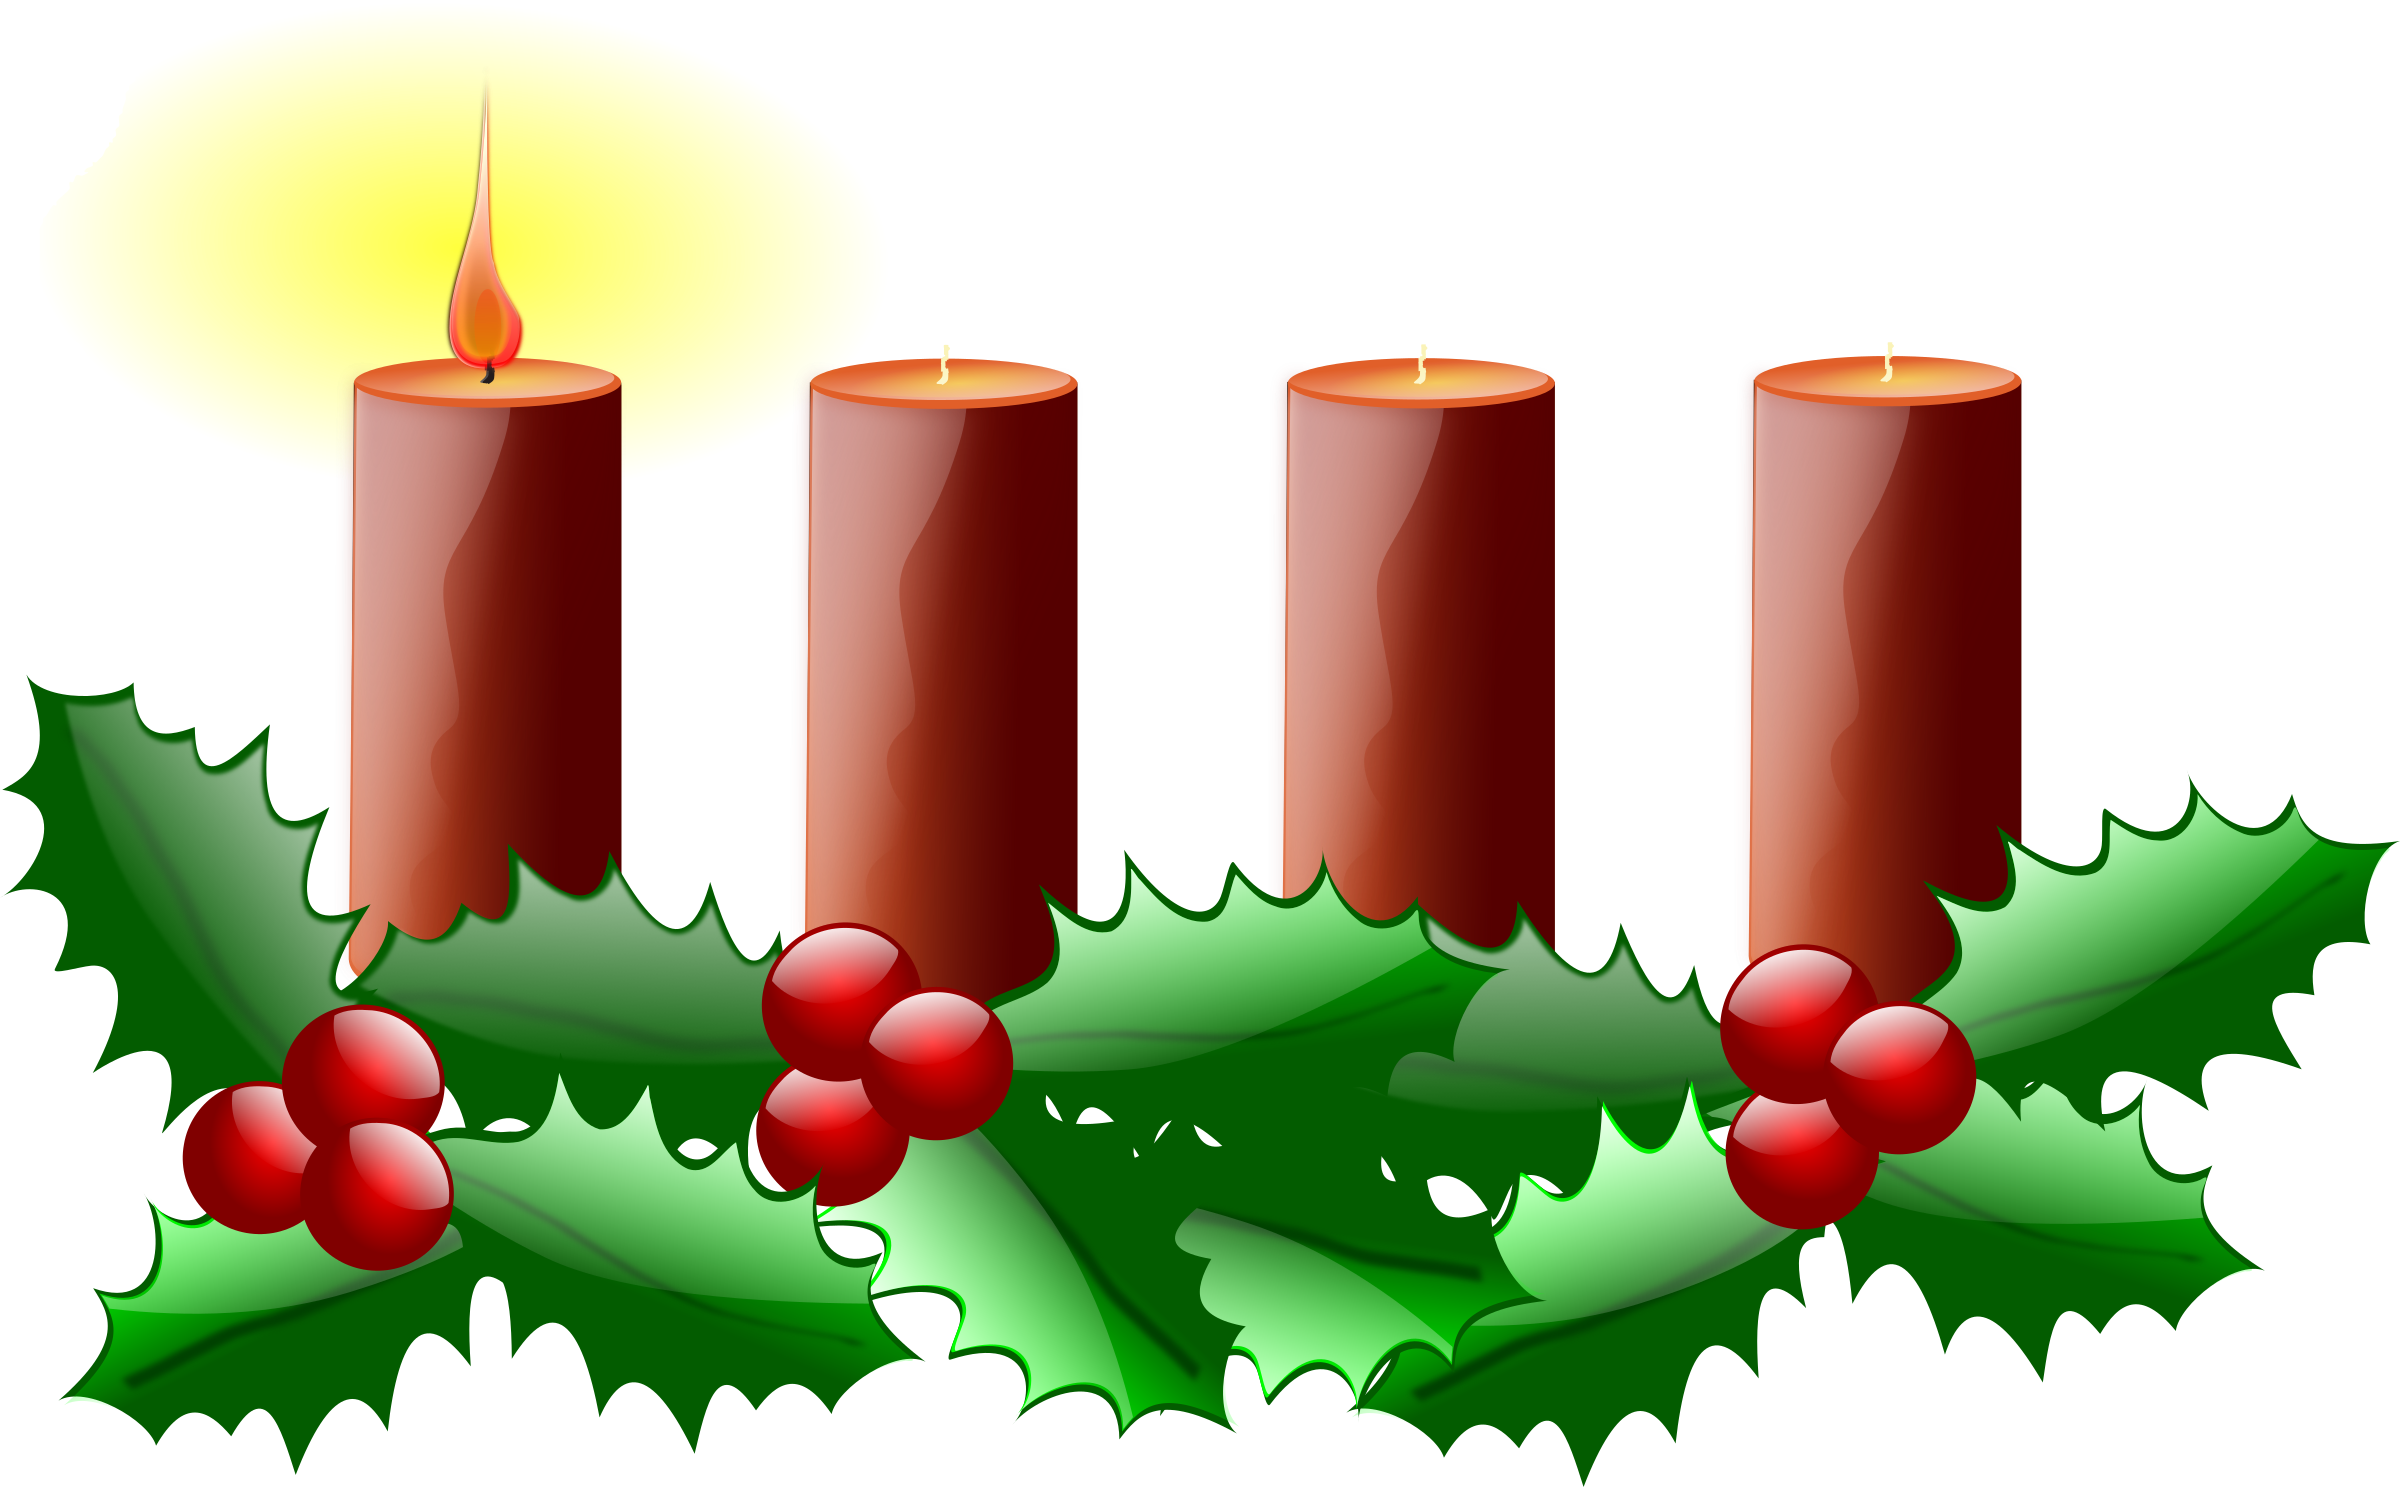 clipart first sunday of advent rh openclipart org advent wreath clipart black and white advent wreath clipart free